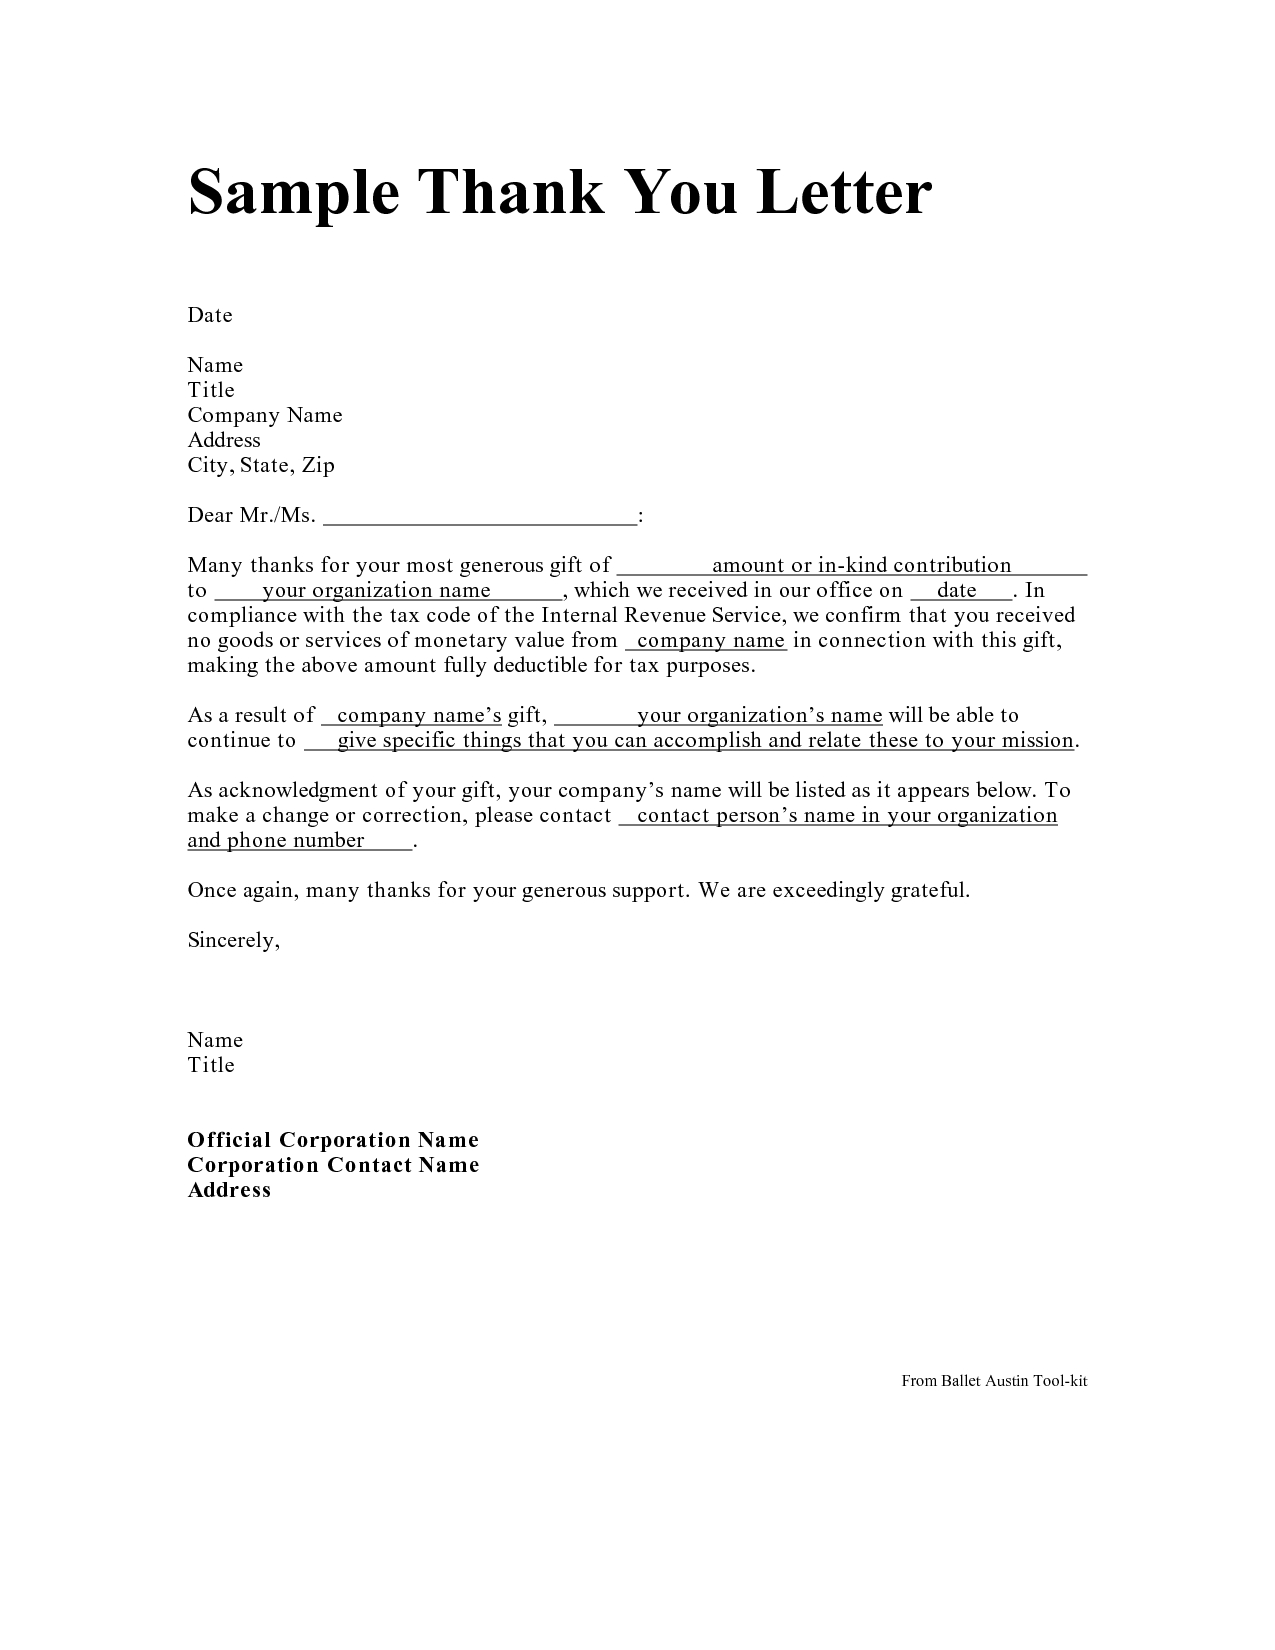 Personal Donation Letter Template - Personal Thank You Letter Personal Thank You Letter Samples